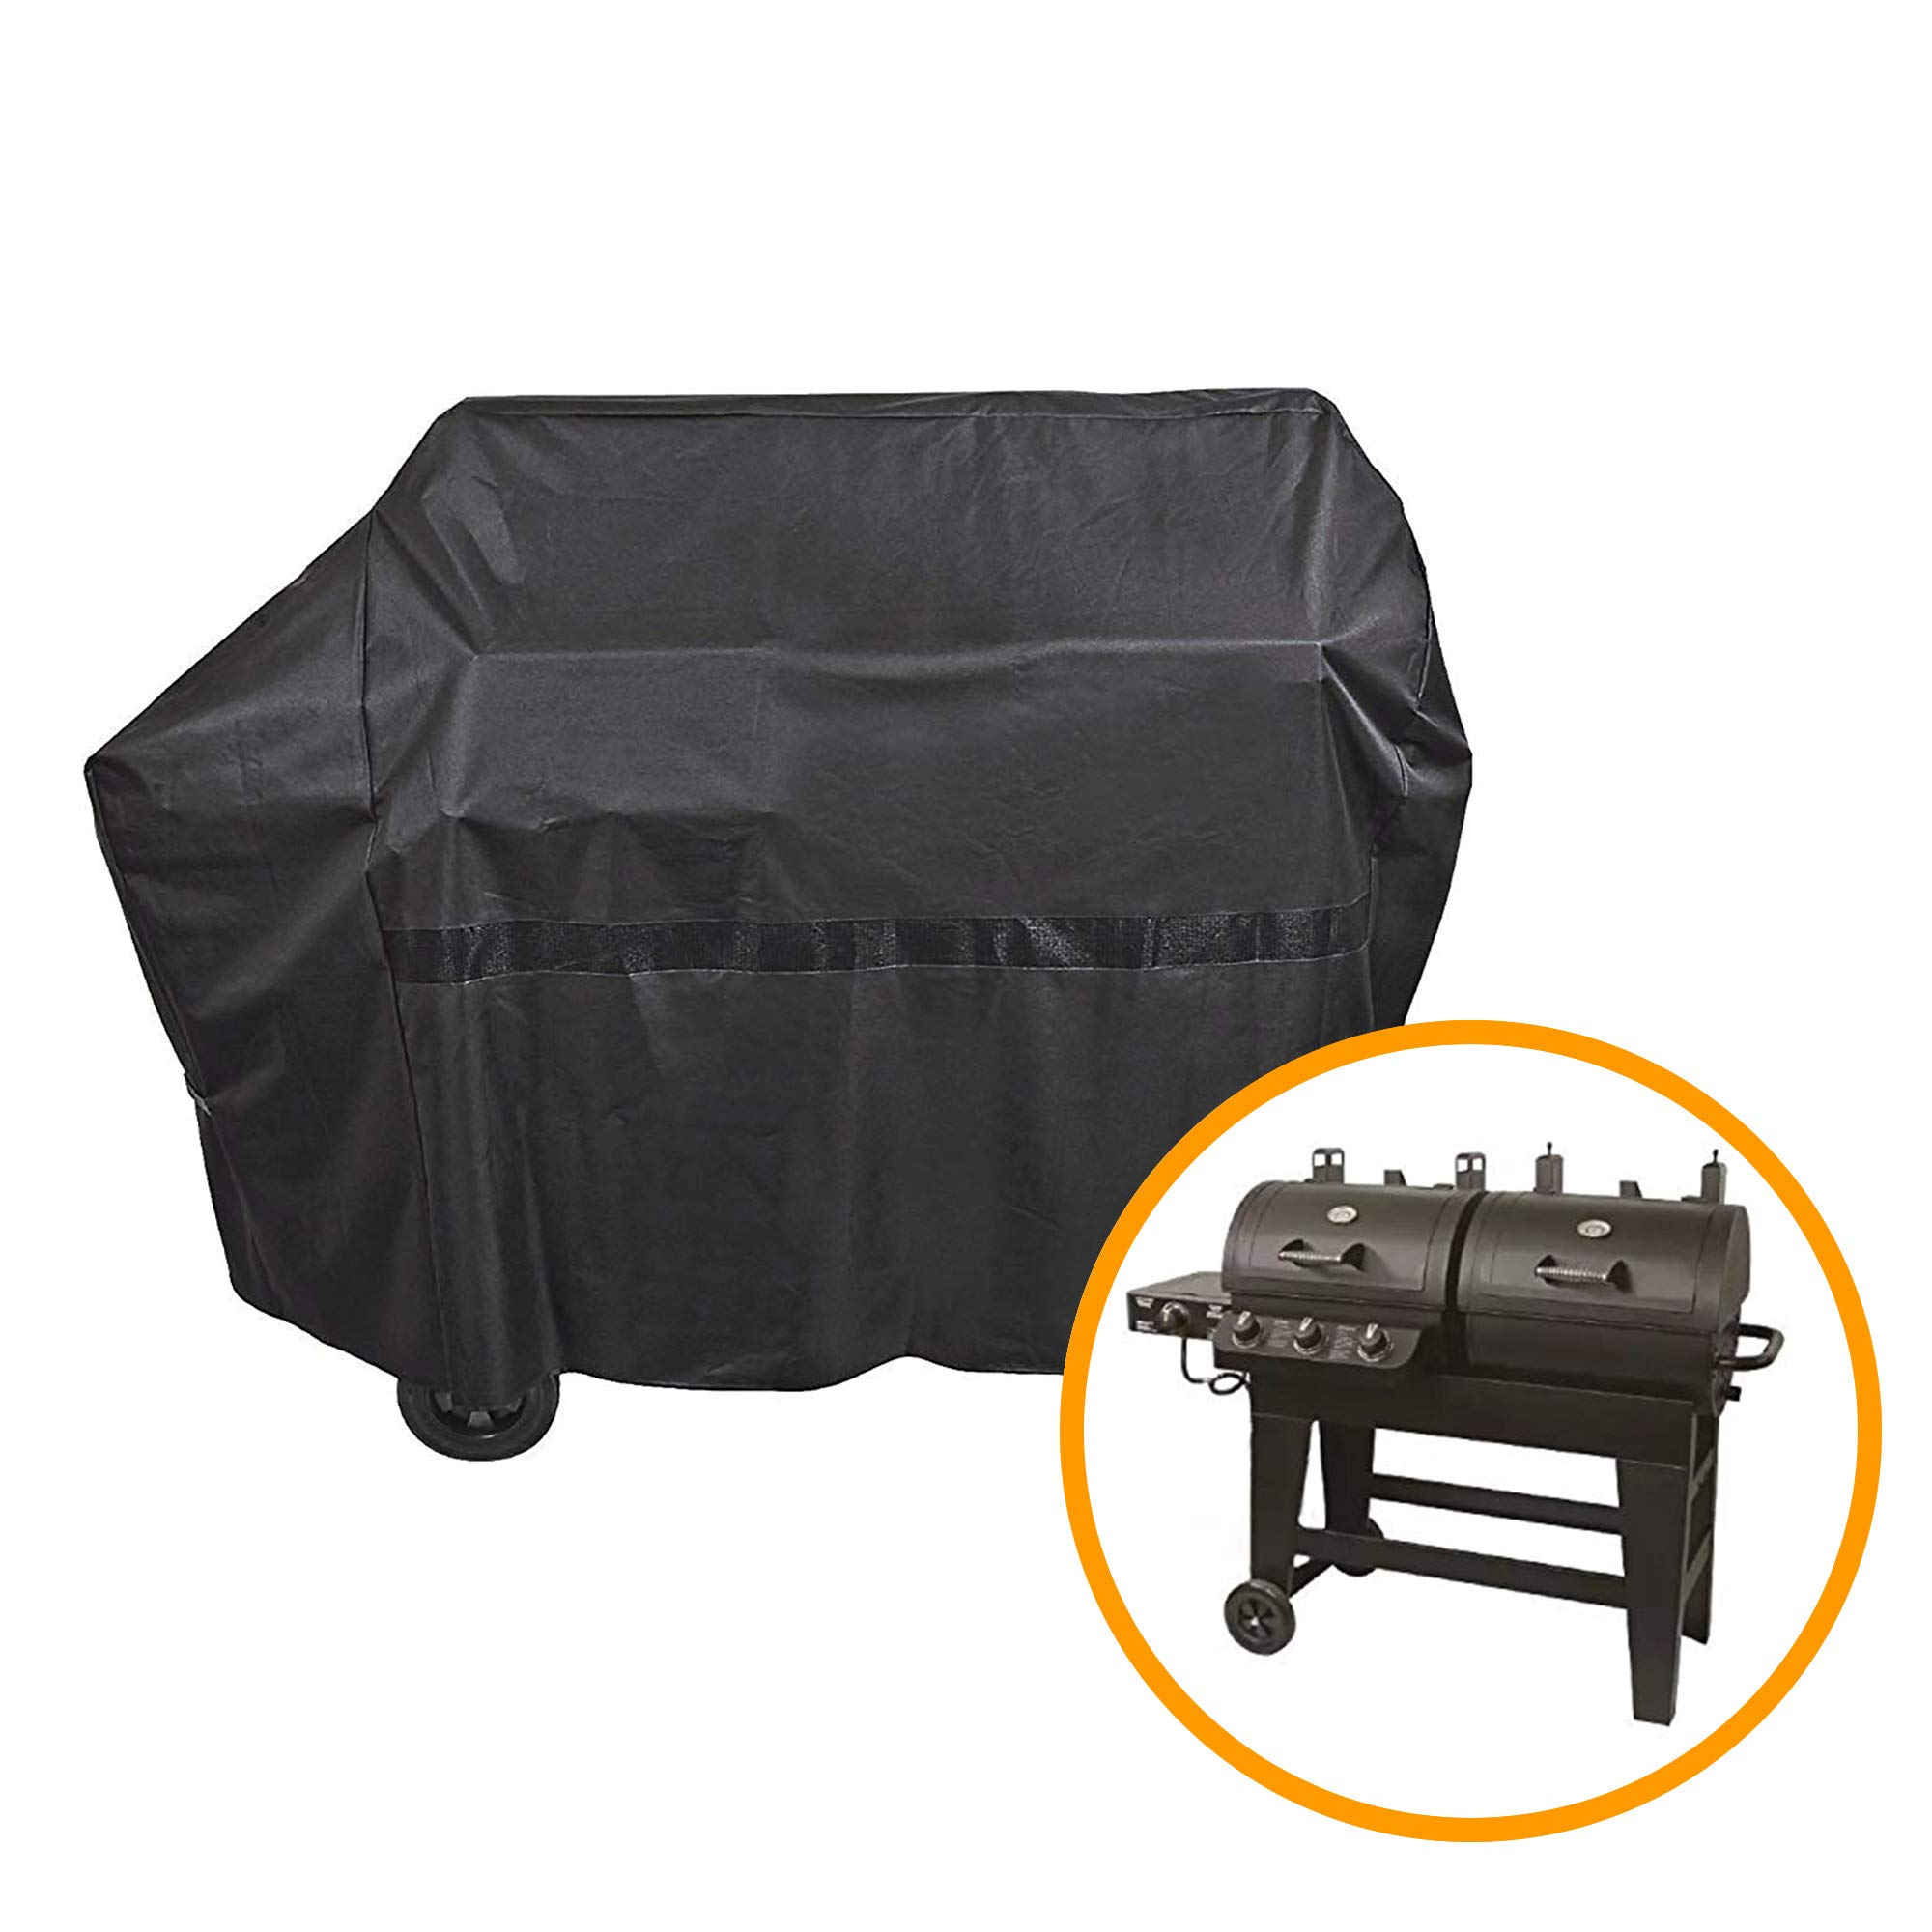 iCOVER 65 Inch 600D Heavy-Duty Water Proof Black Canvas BBQ Barbecue Grill Cover for Gas and Charcoal Combination Style Grill with Side Table G21609 for Brinkmann Char-Broil Nexgrill Char-Griller by iCOVER